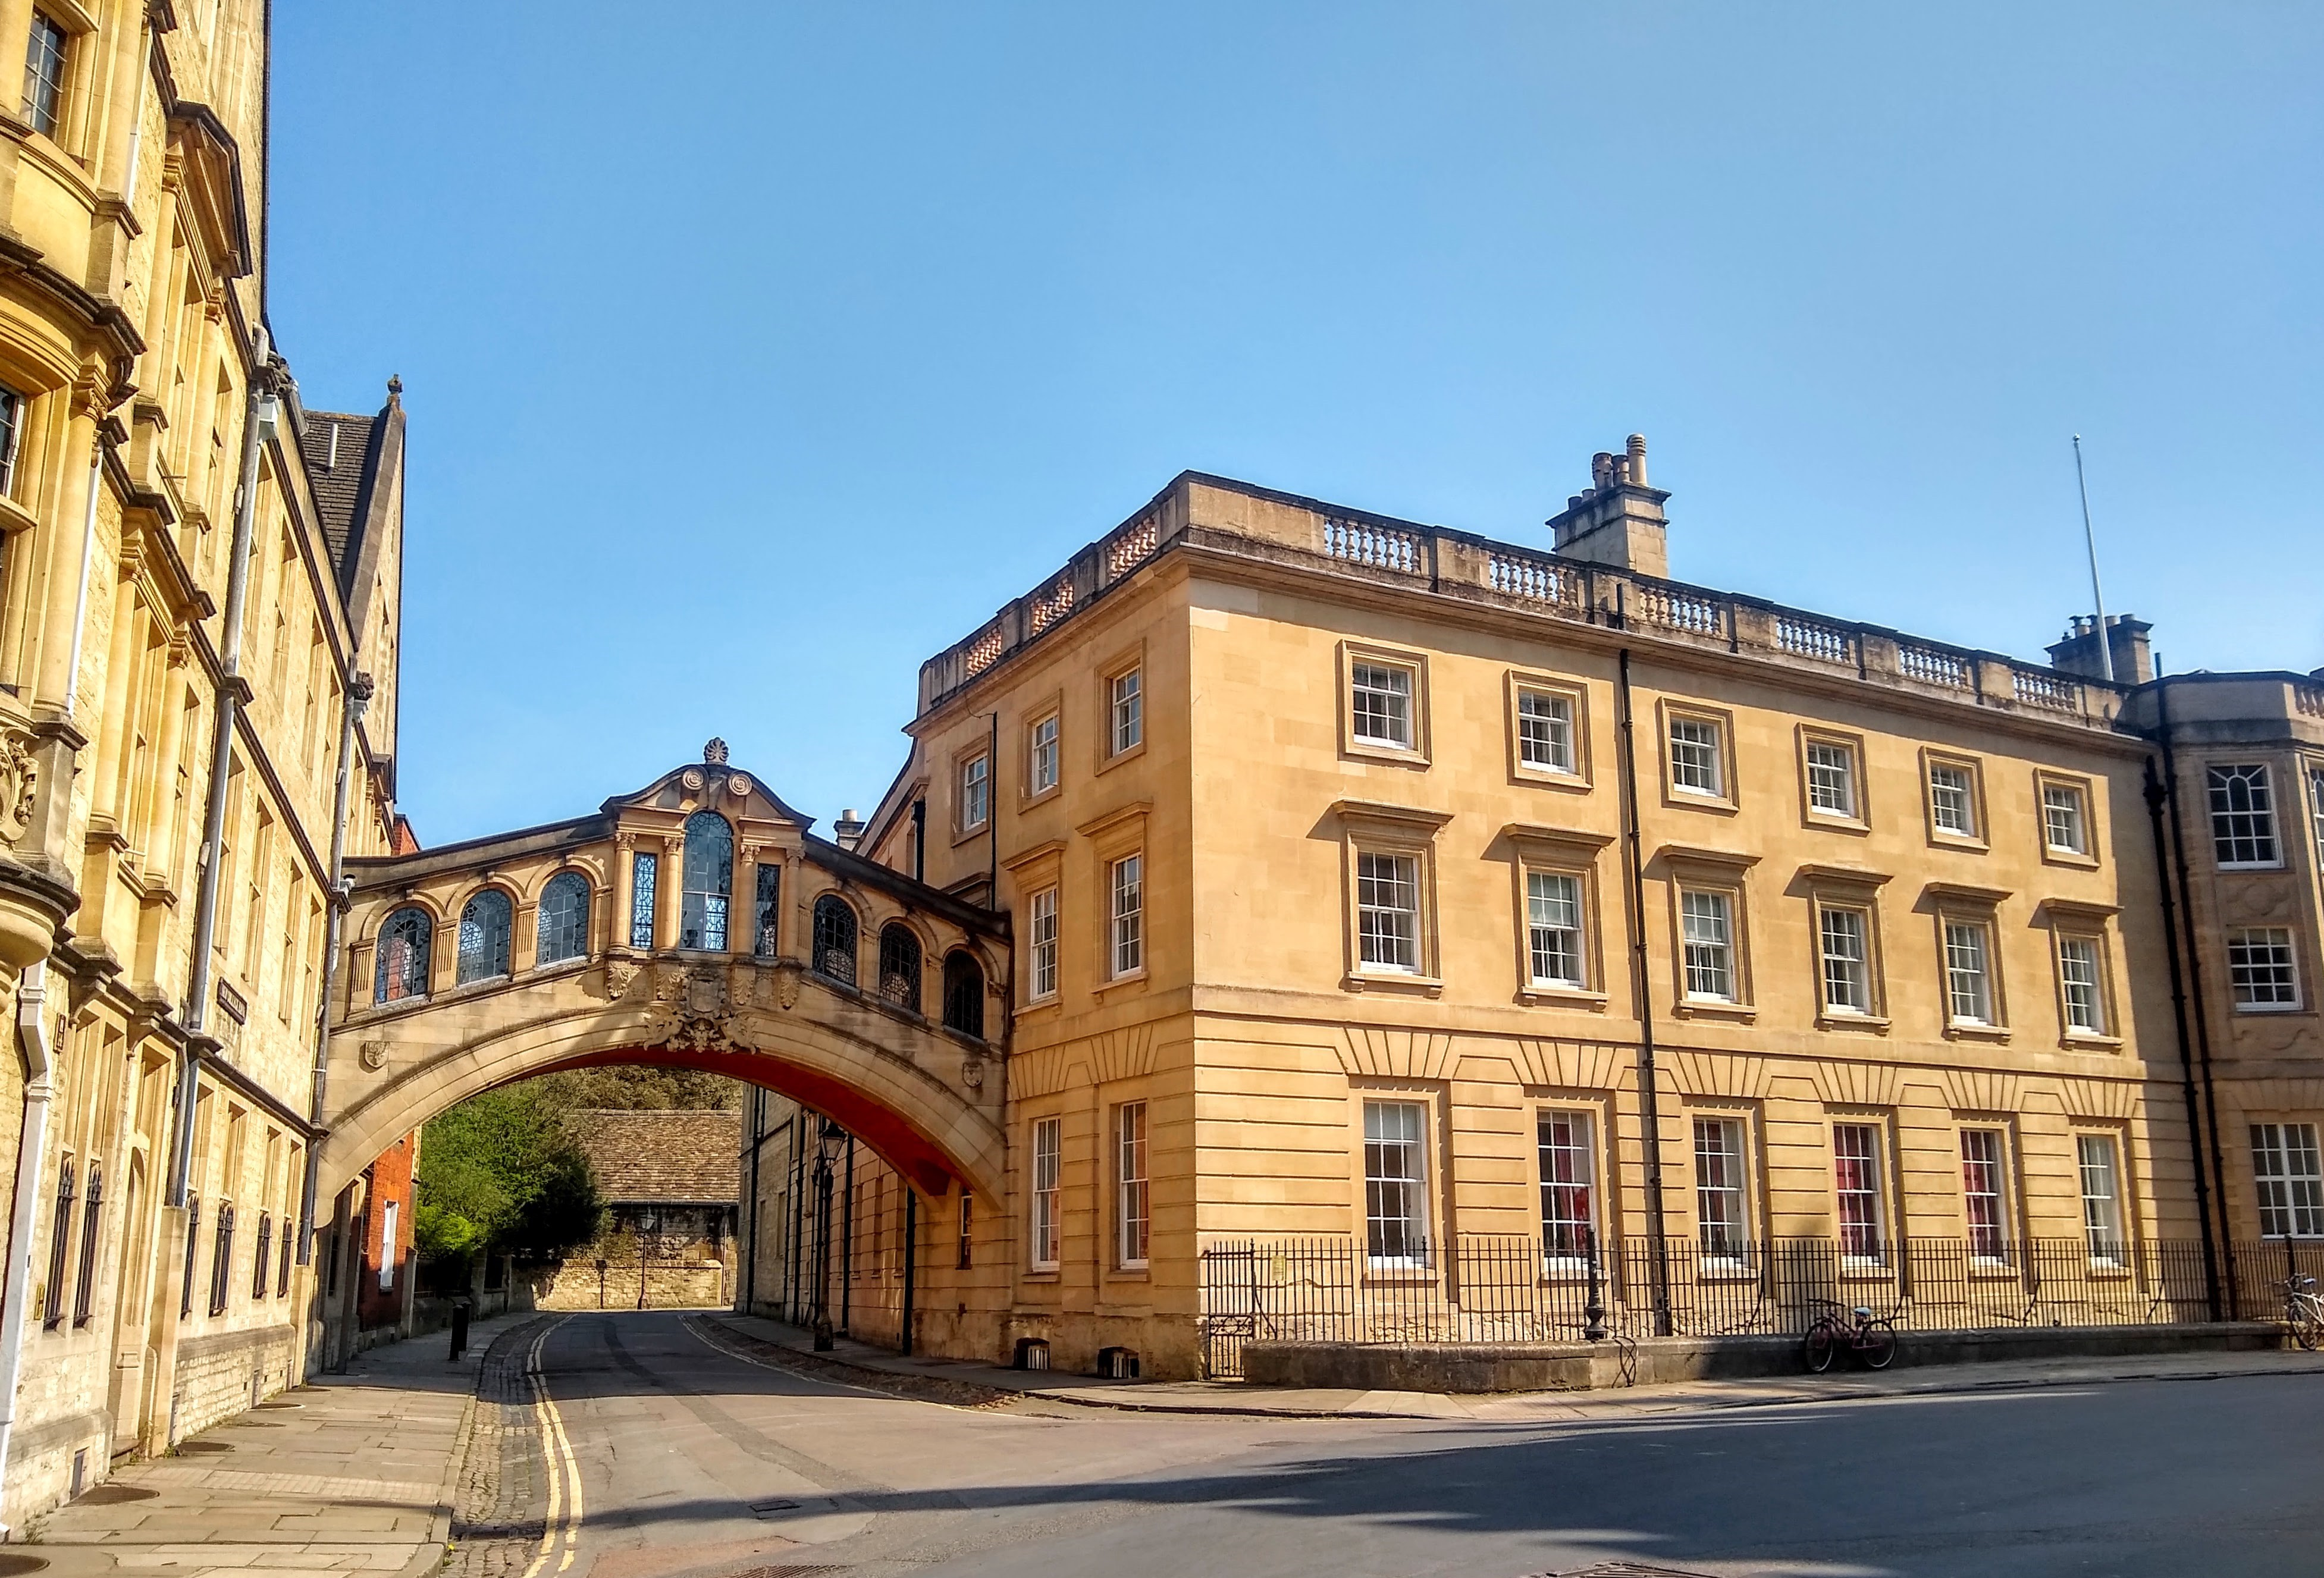 A view of the Bridge of Sighs in a deserted Oxford during lockdown